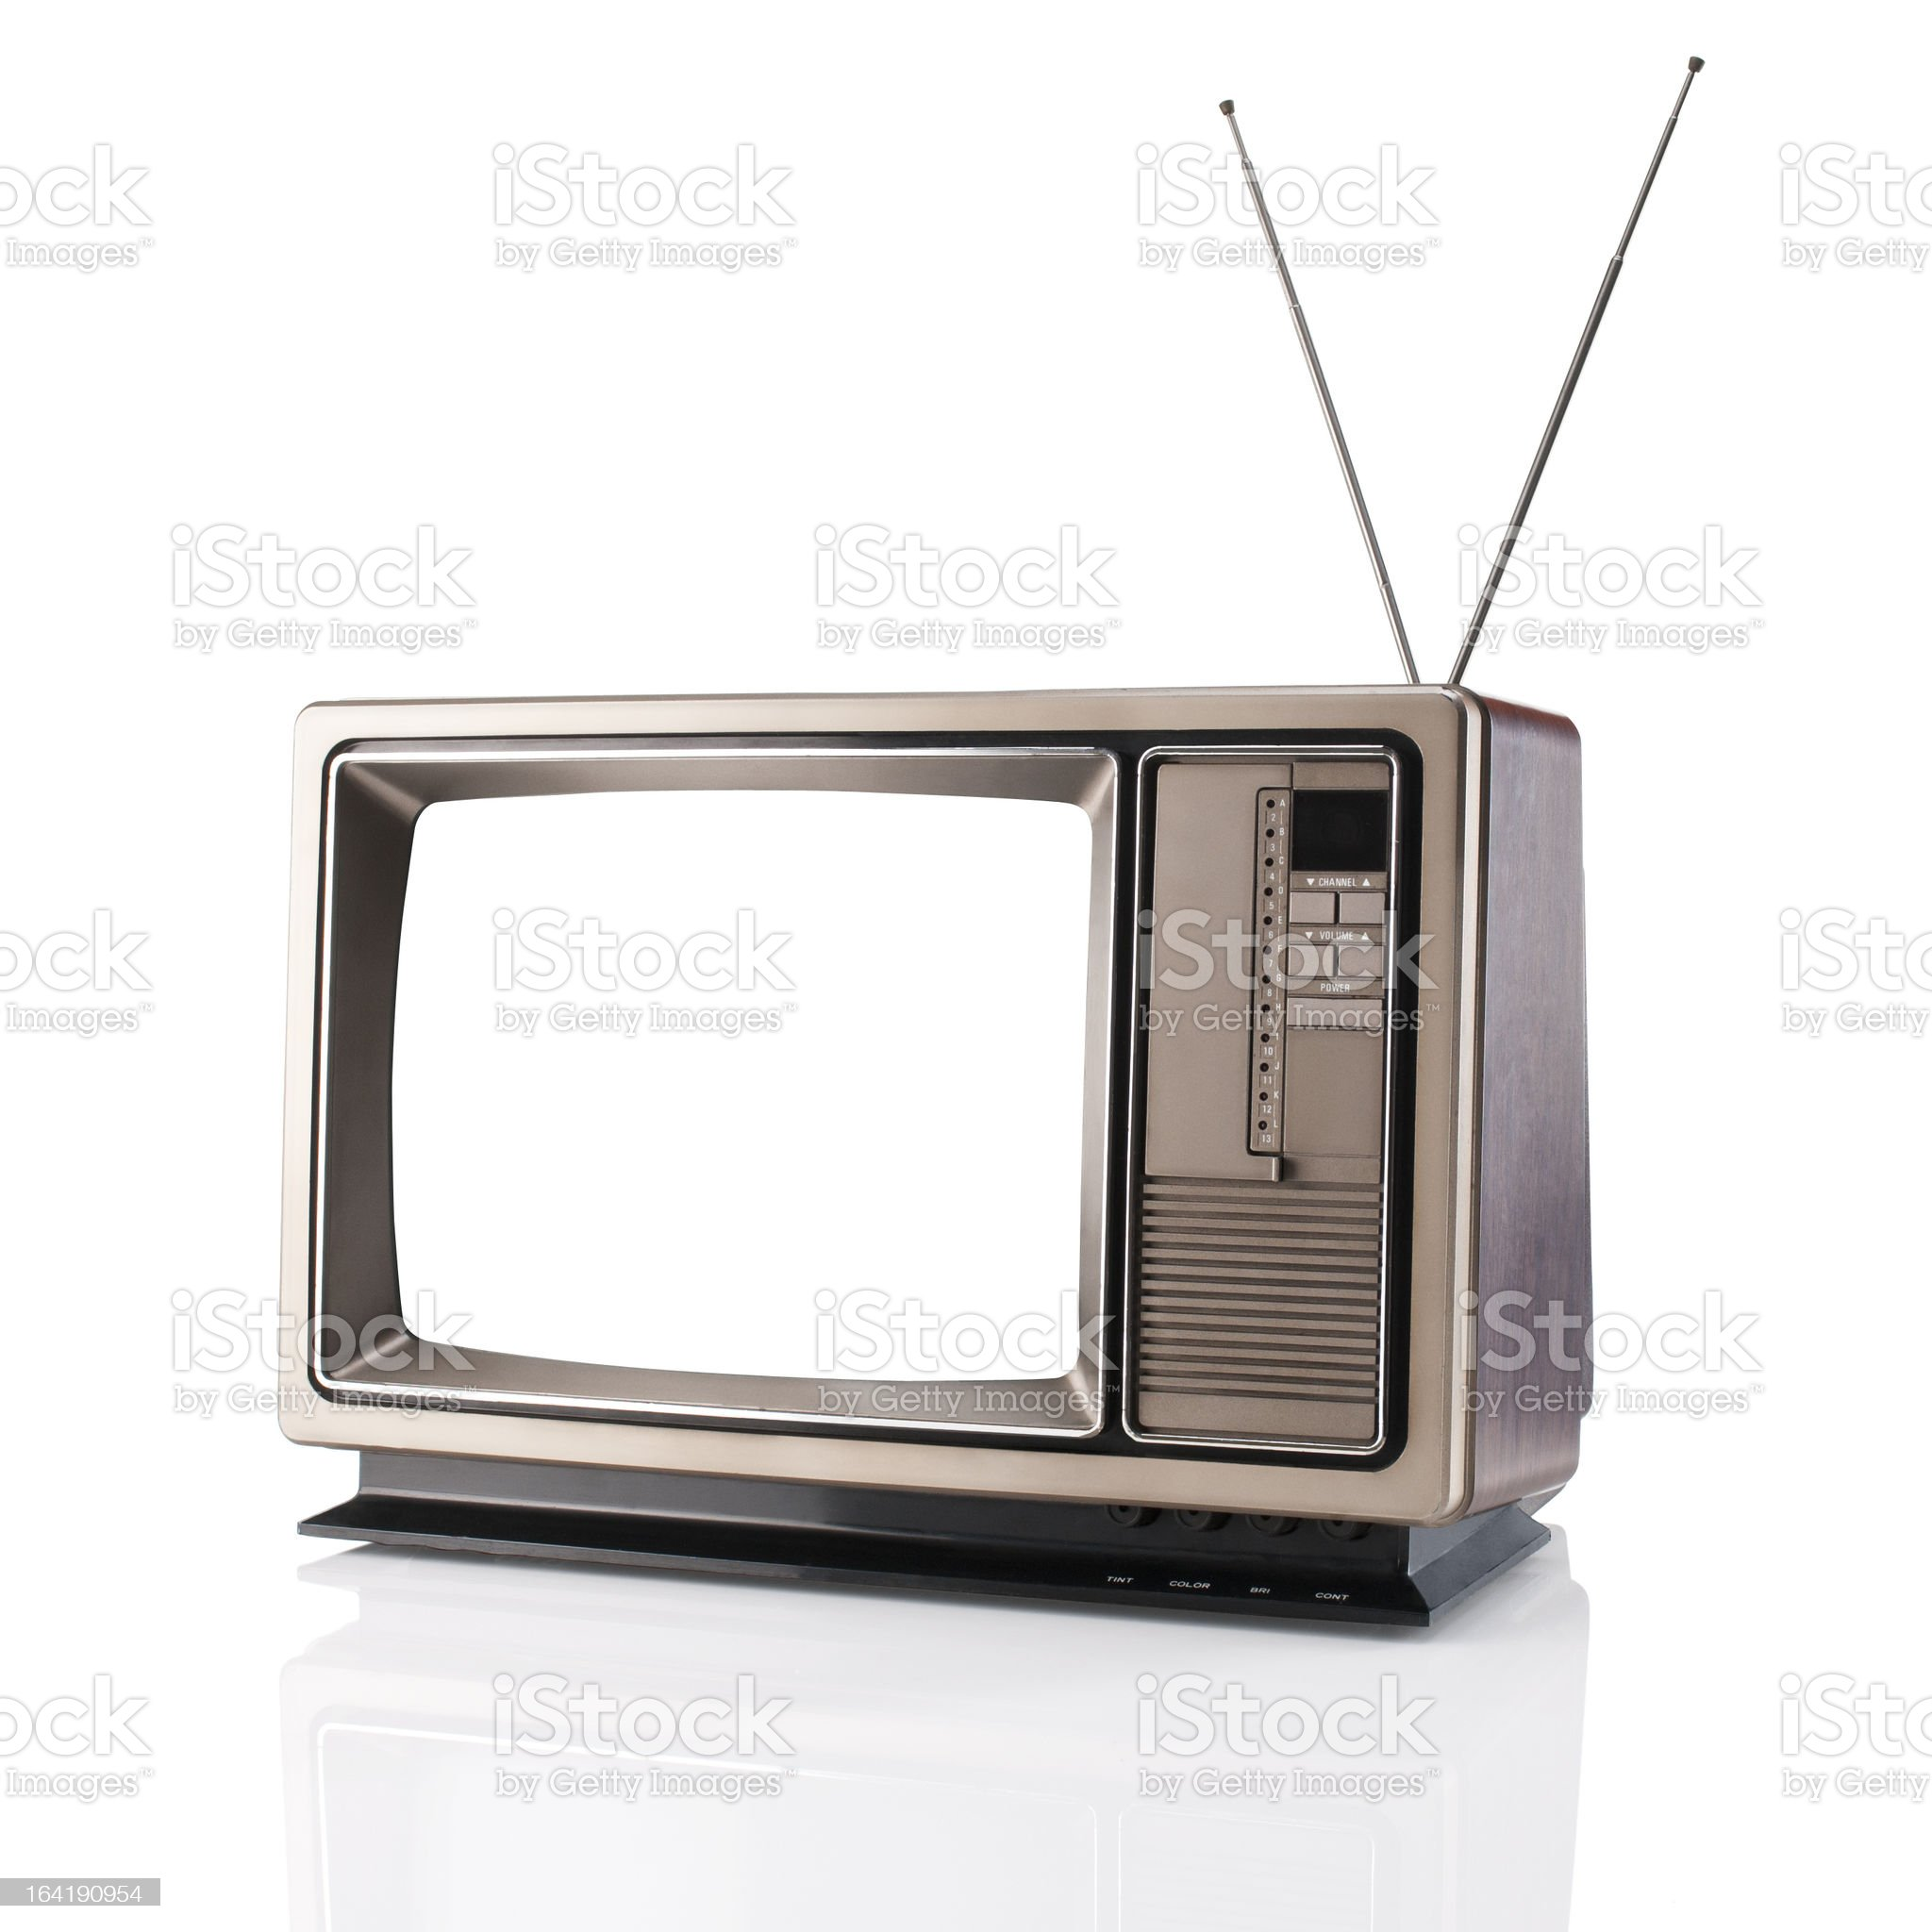 Vintage Television With Clipping Path royalty-free stock photo